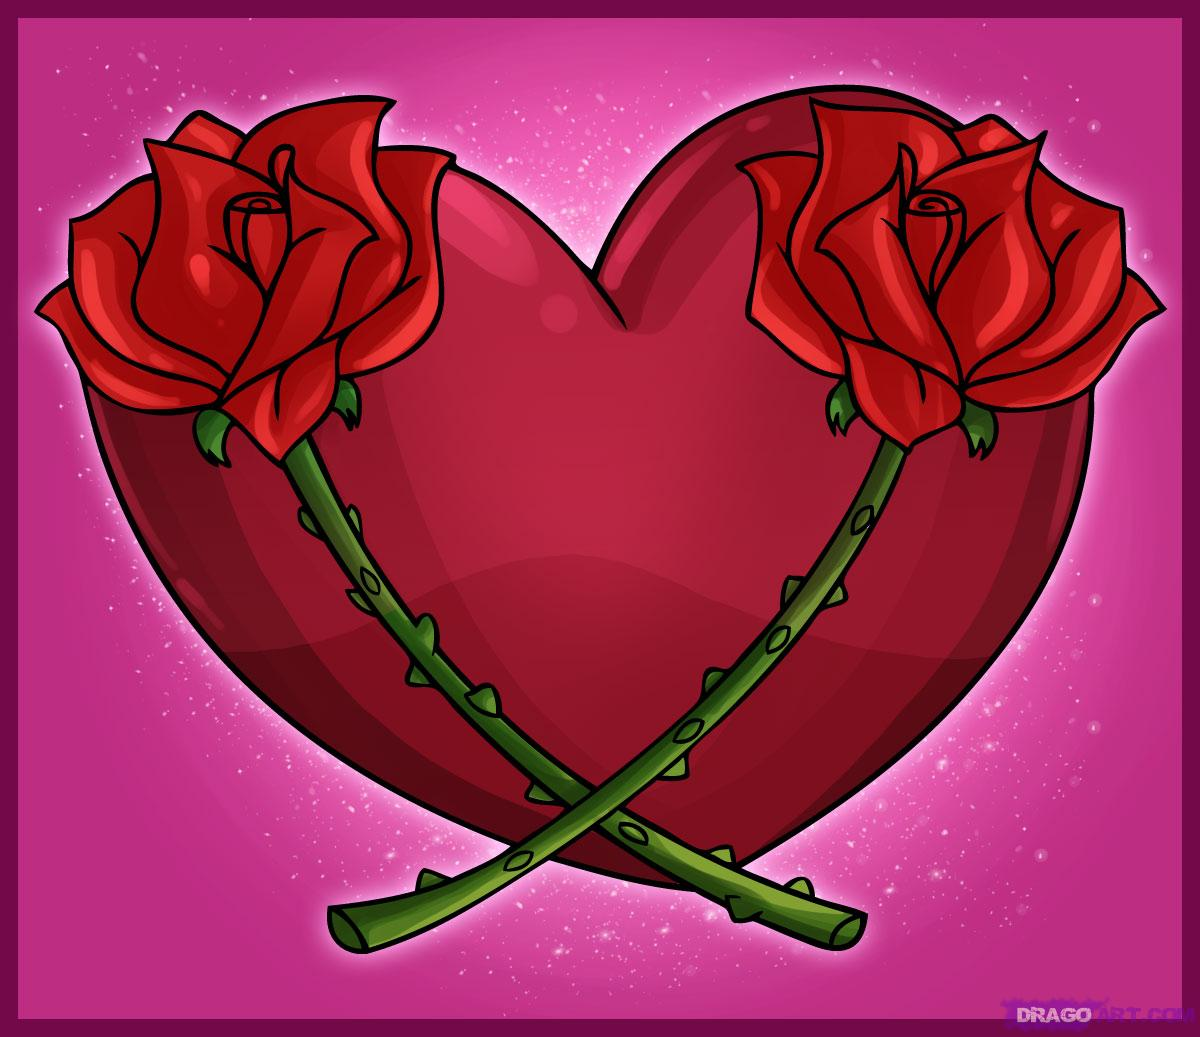 Drawn red rose cartoon A to Pop Heart with